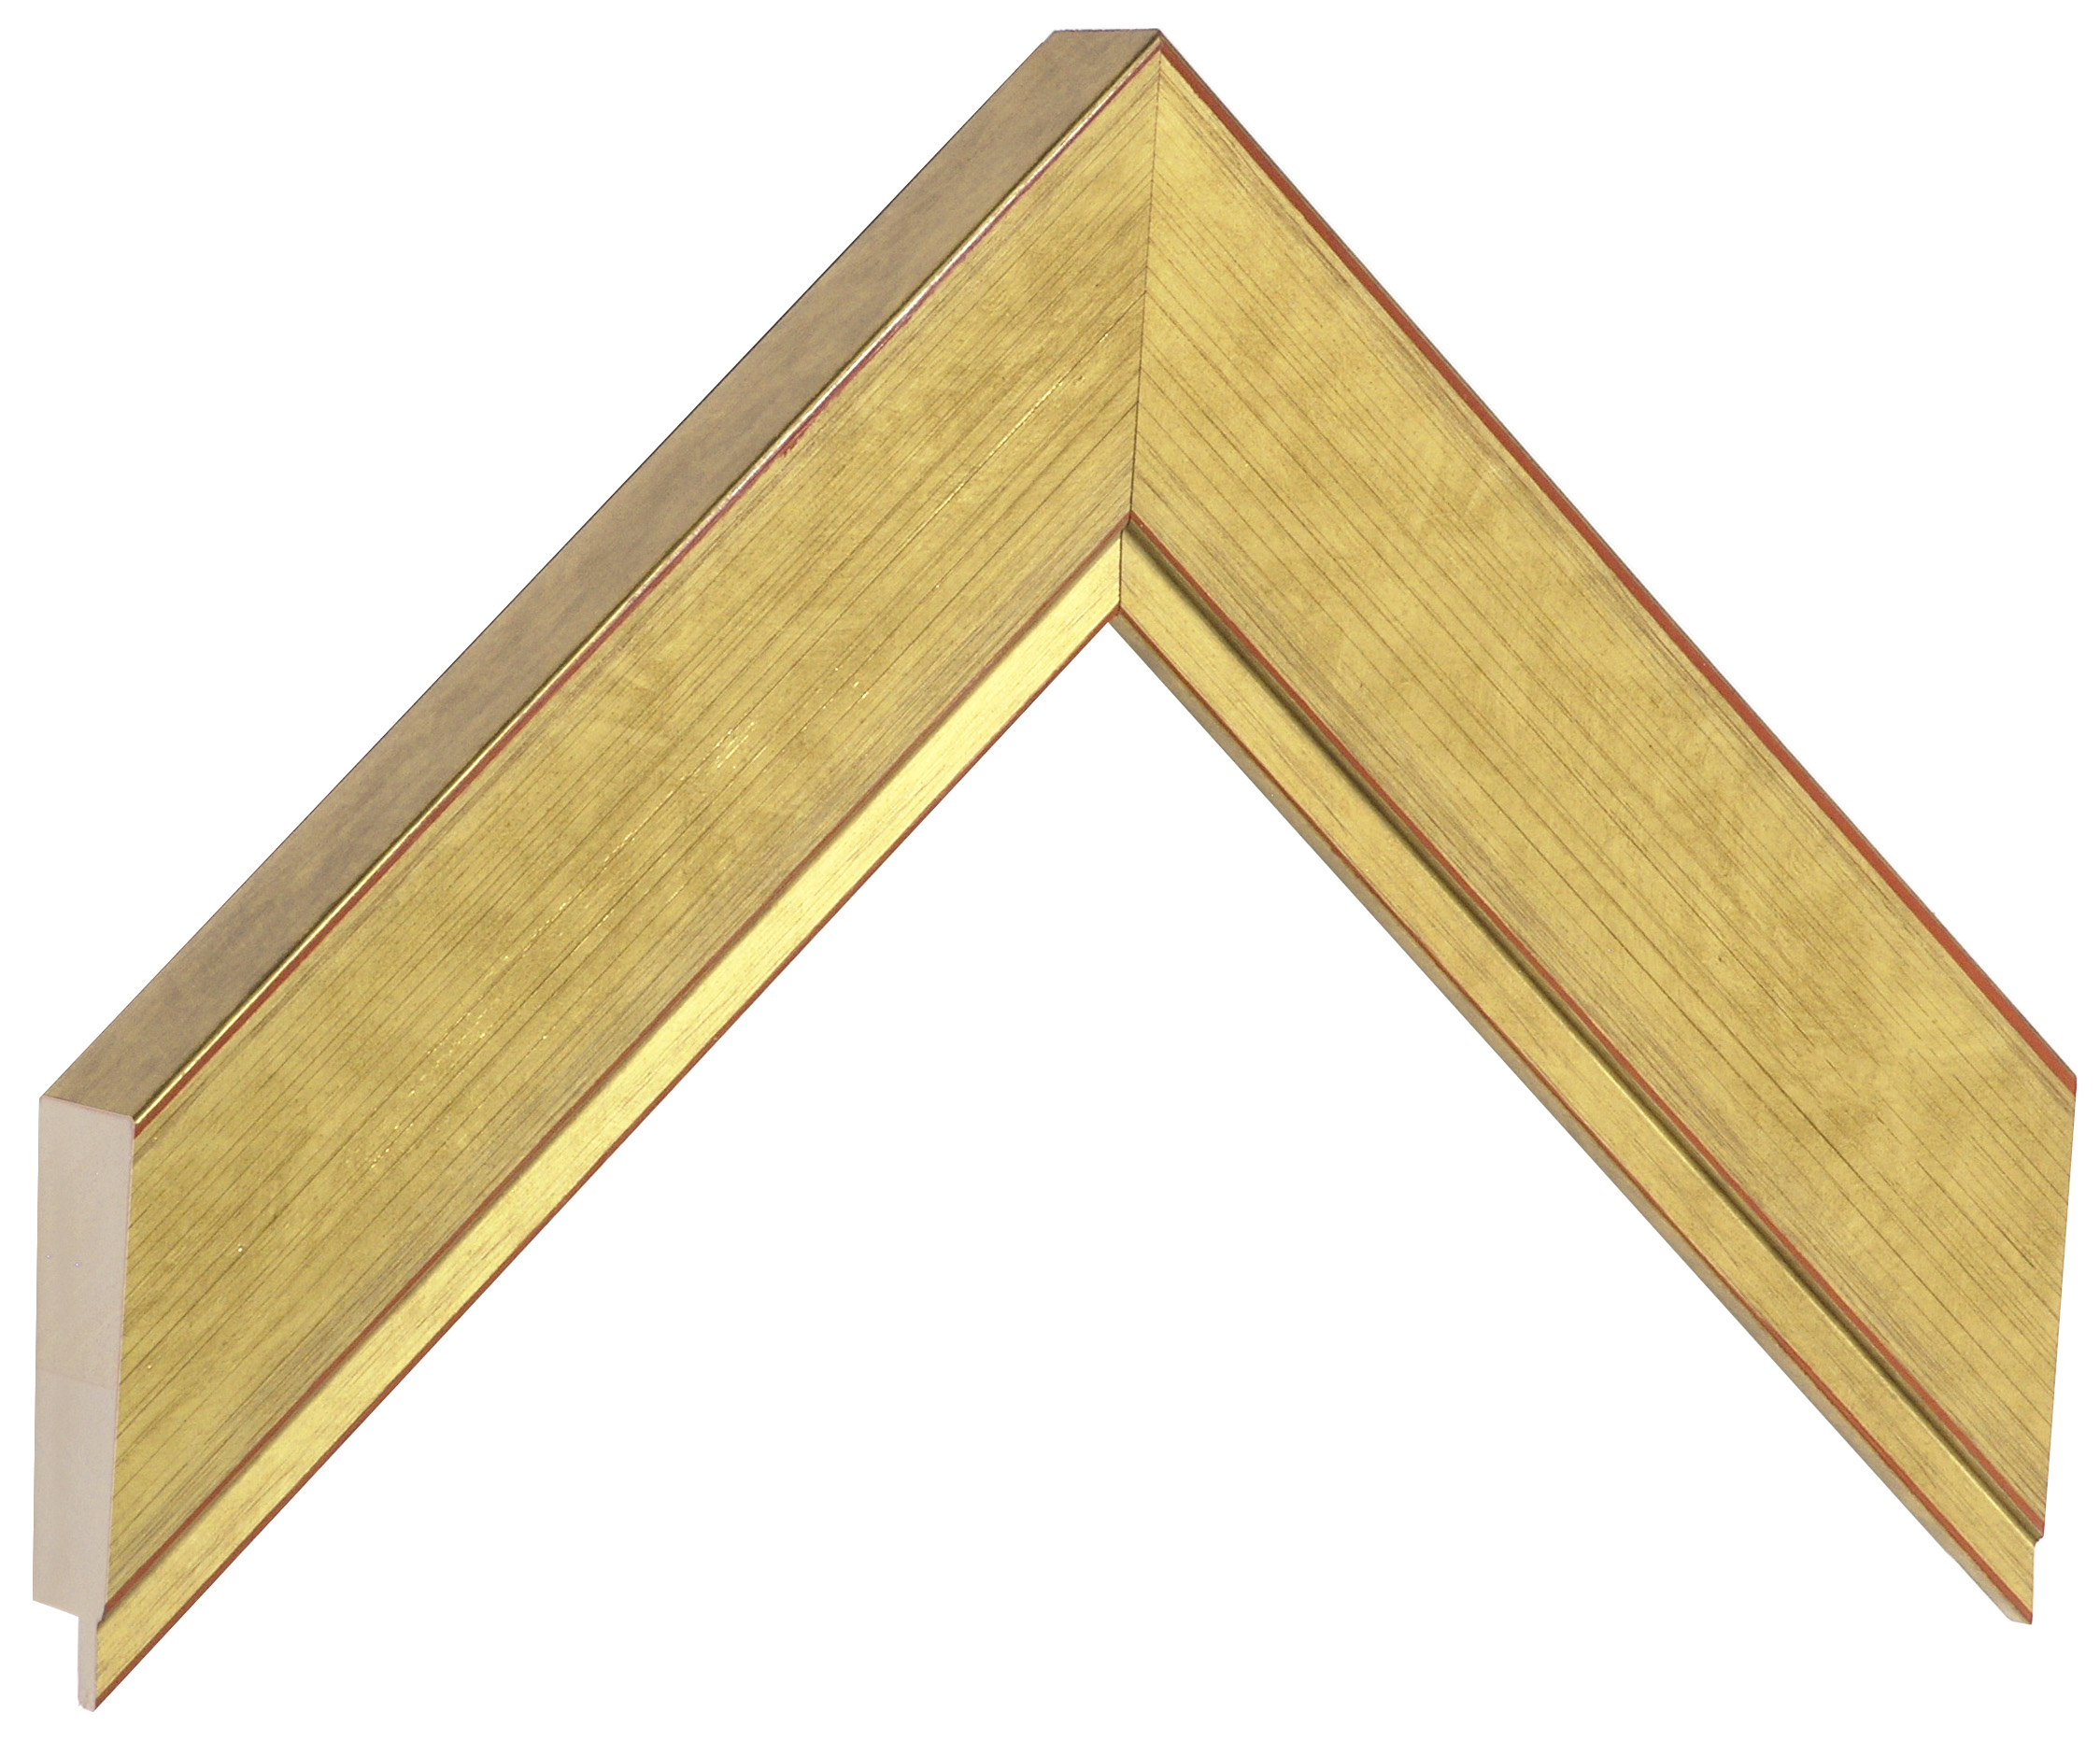 Moulding ayous - width 42mm height 27 - gold finish